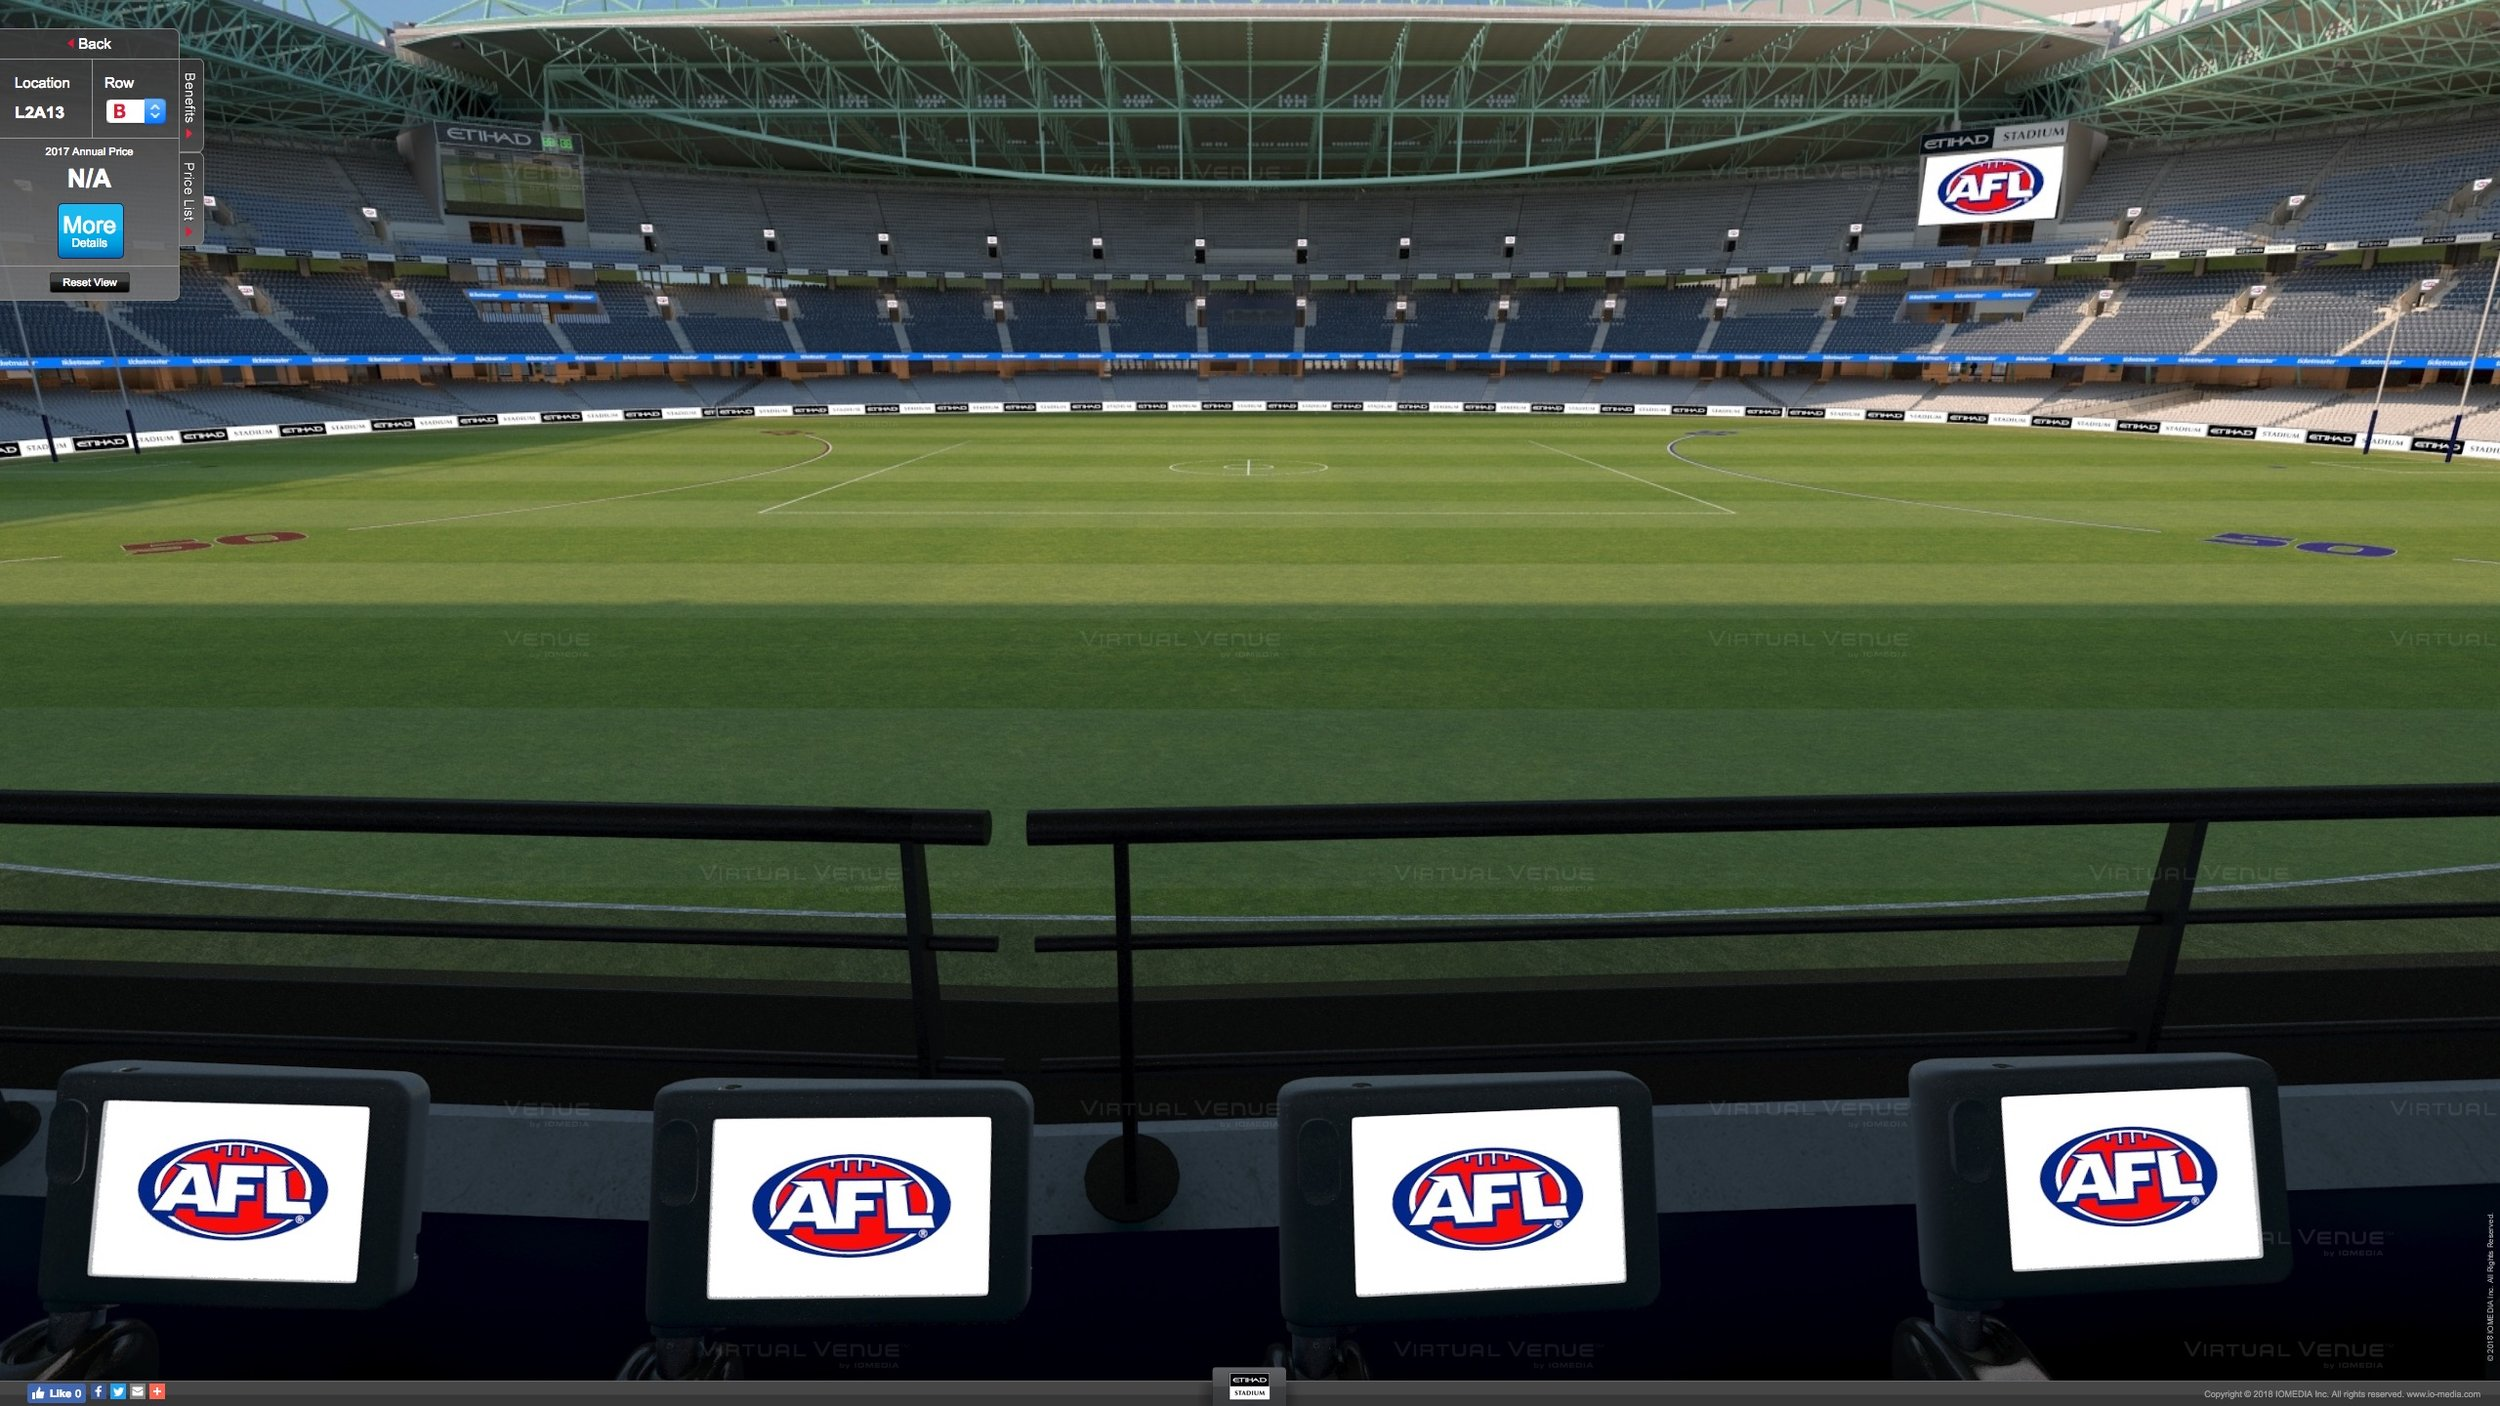 Carlton v Western Bulldogs Marvel Stadium Level 2 AFL tickets